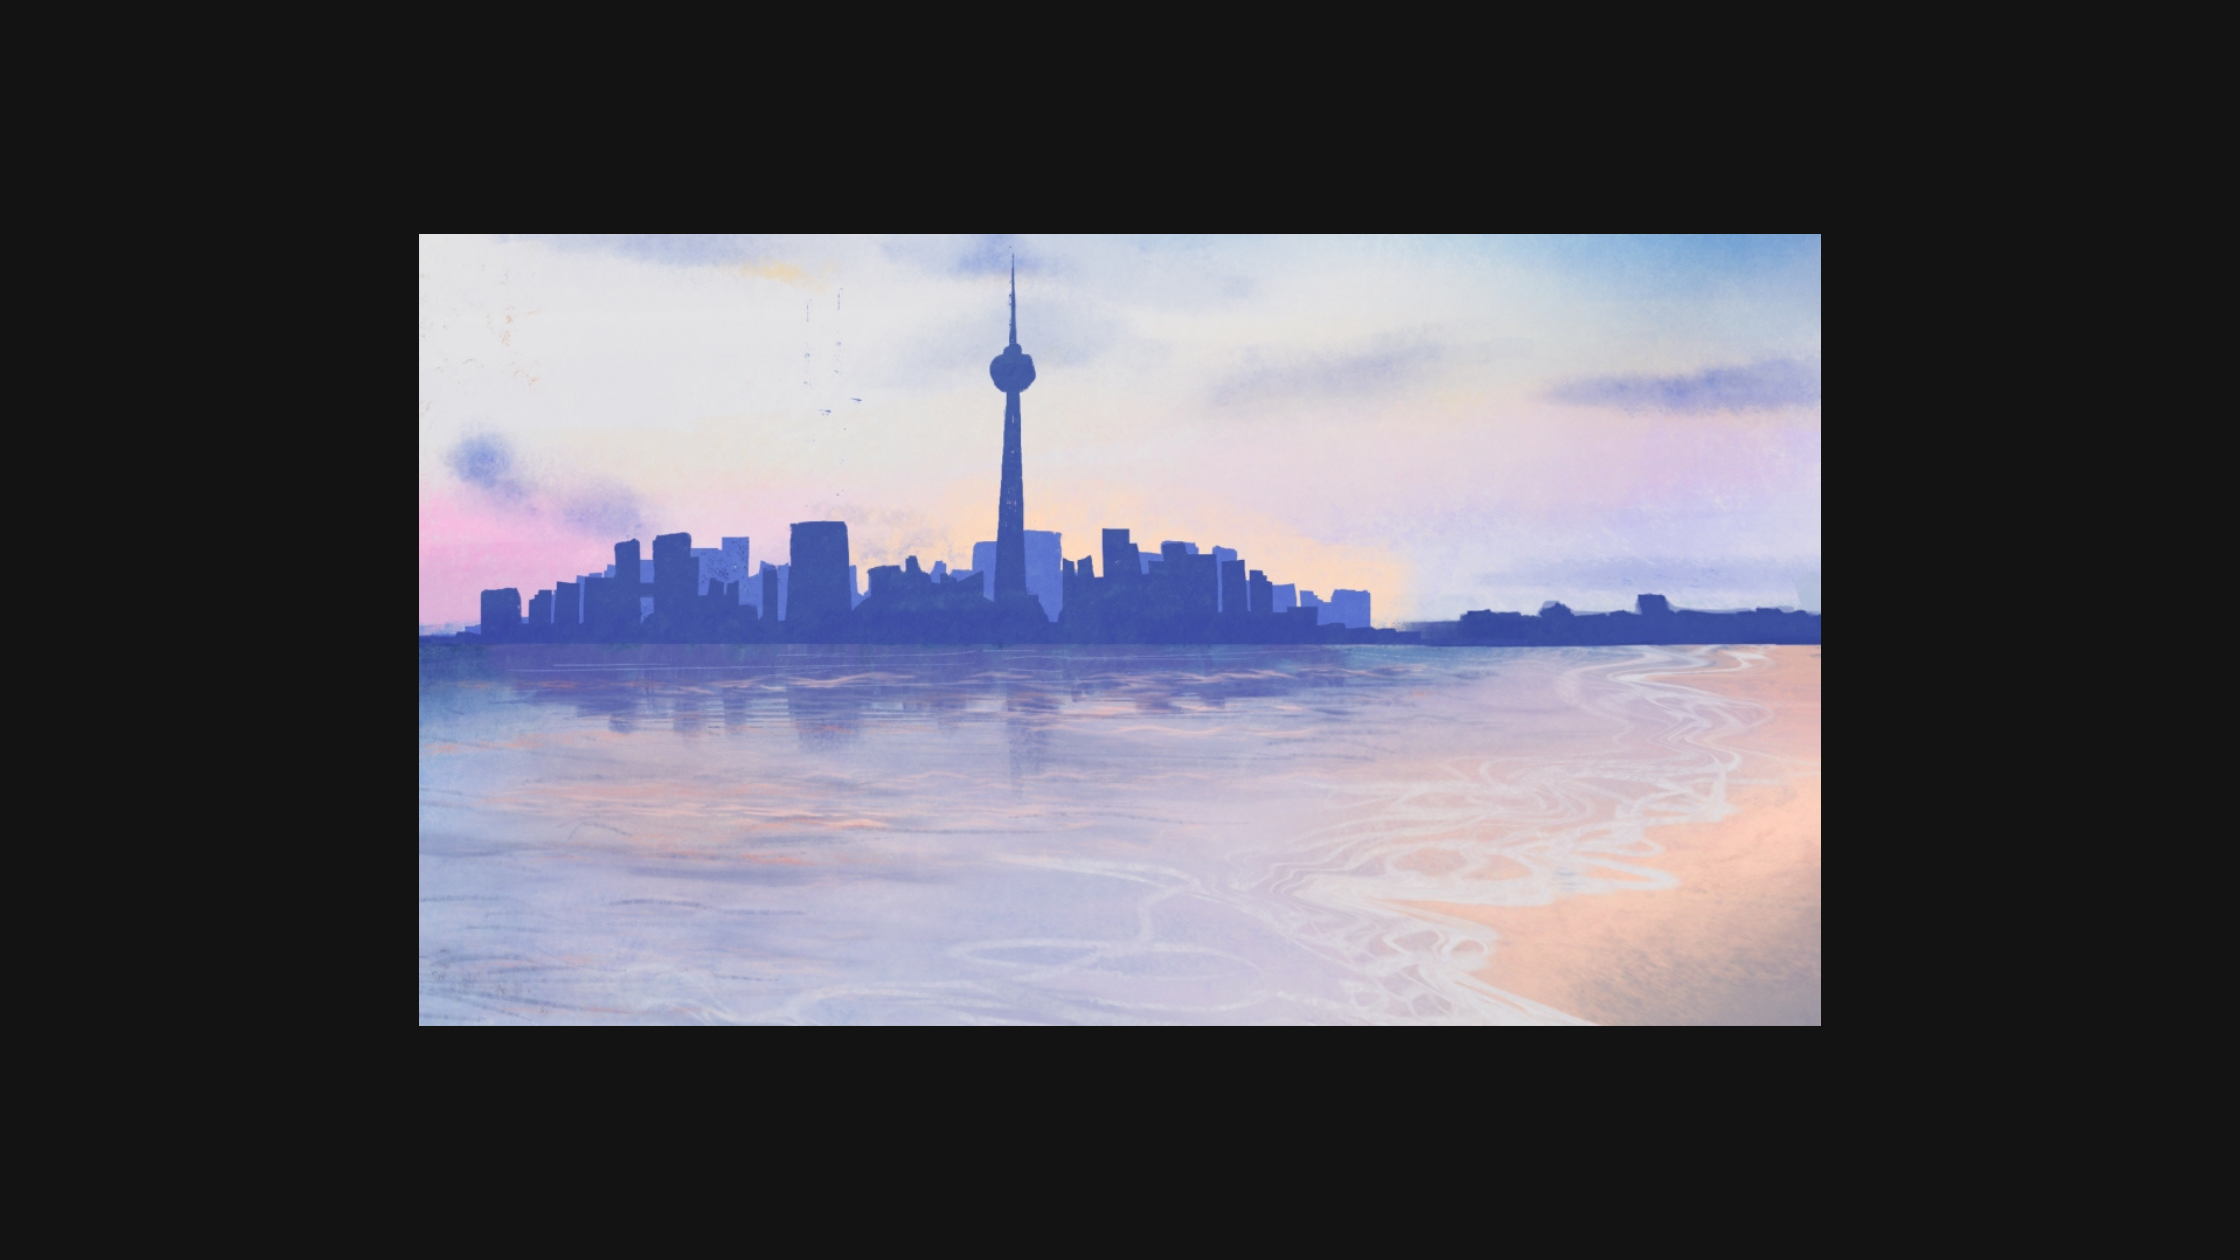 Image of Toronto skyline with water on the shoreline.